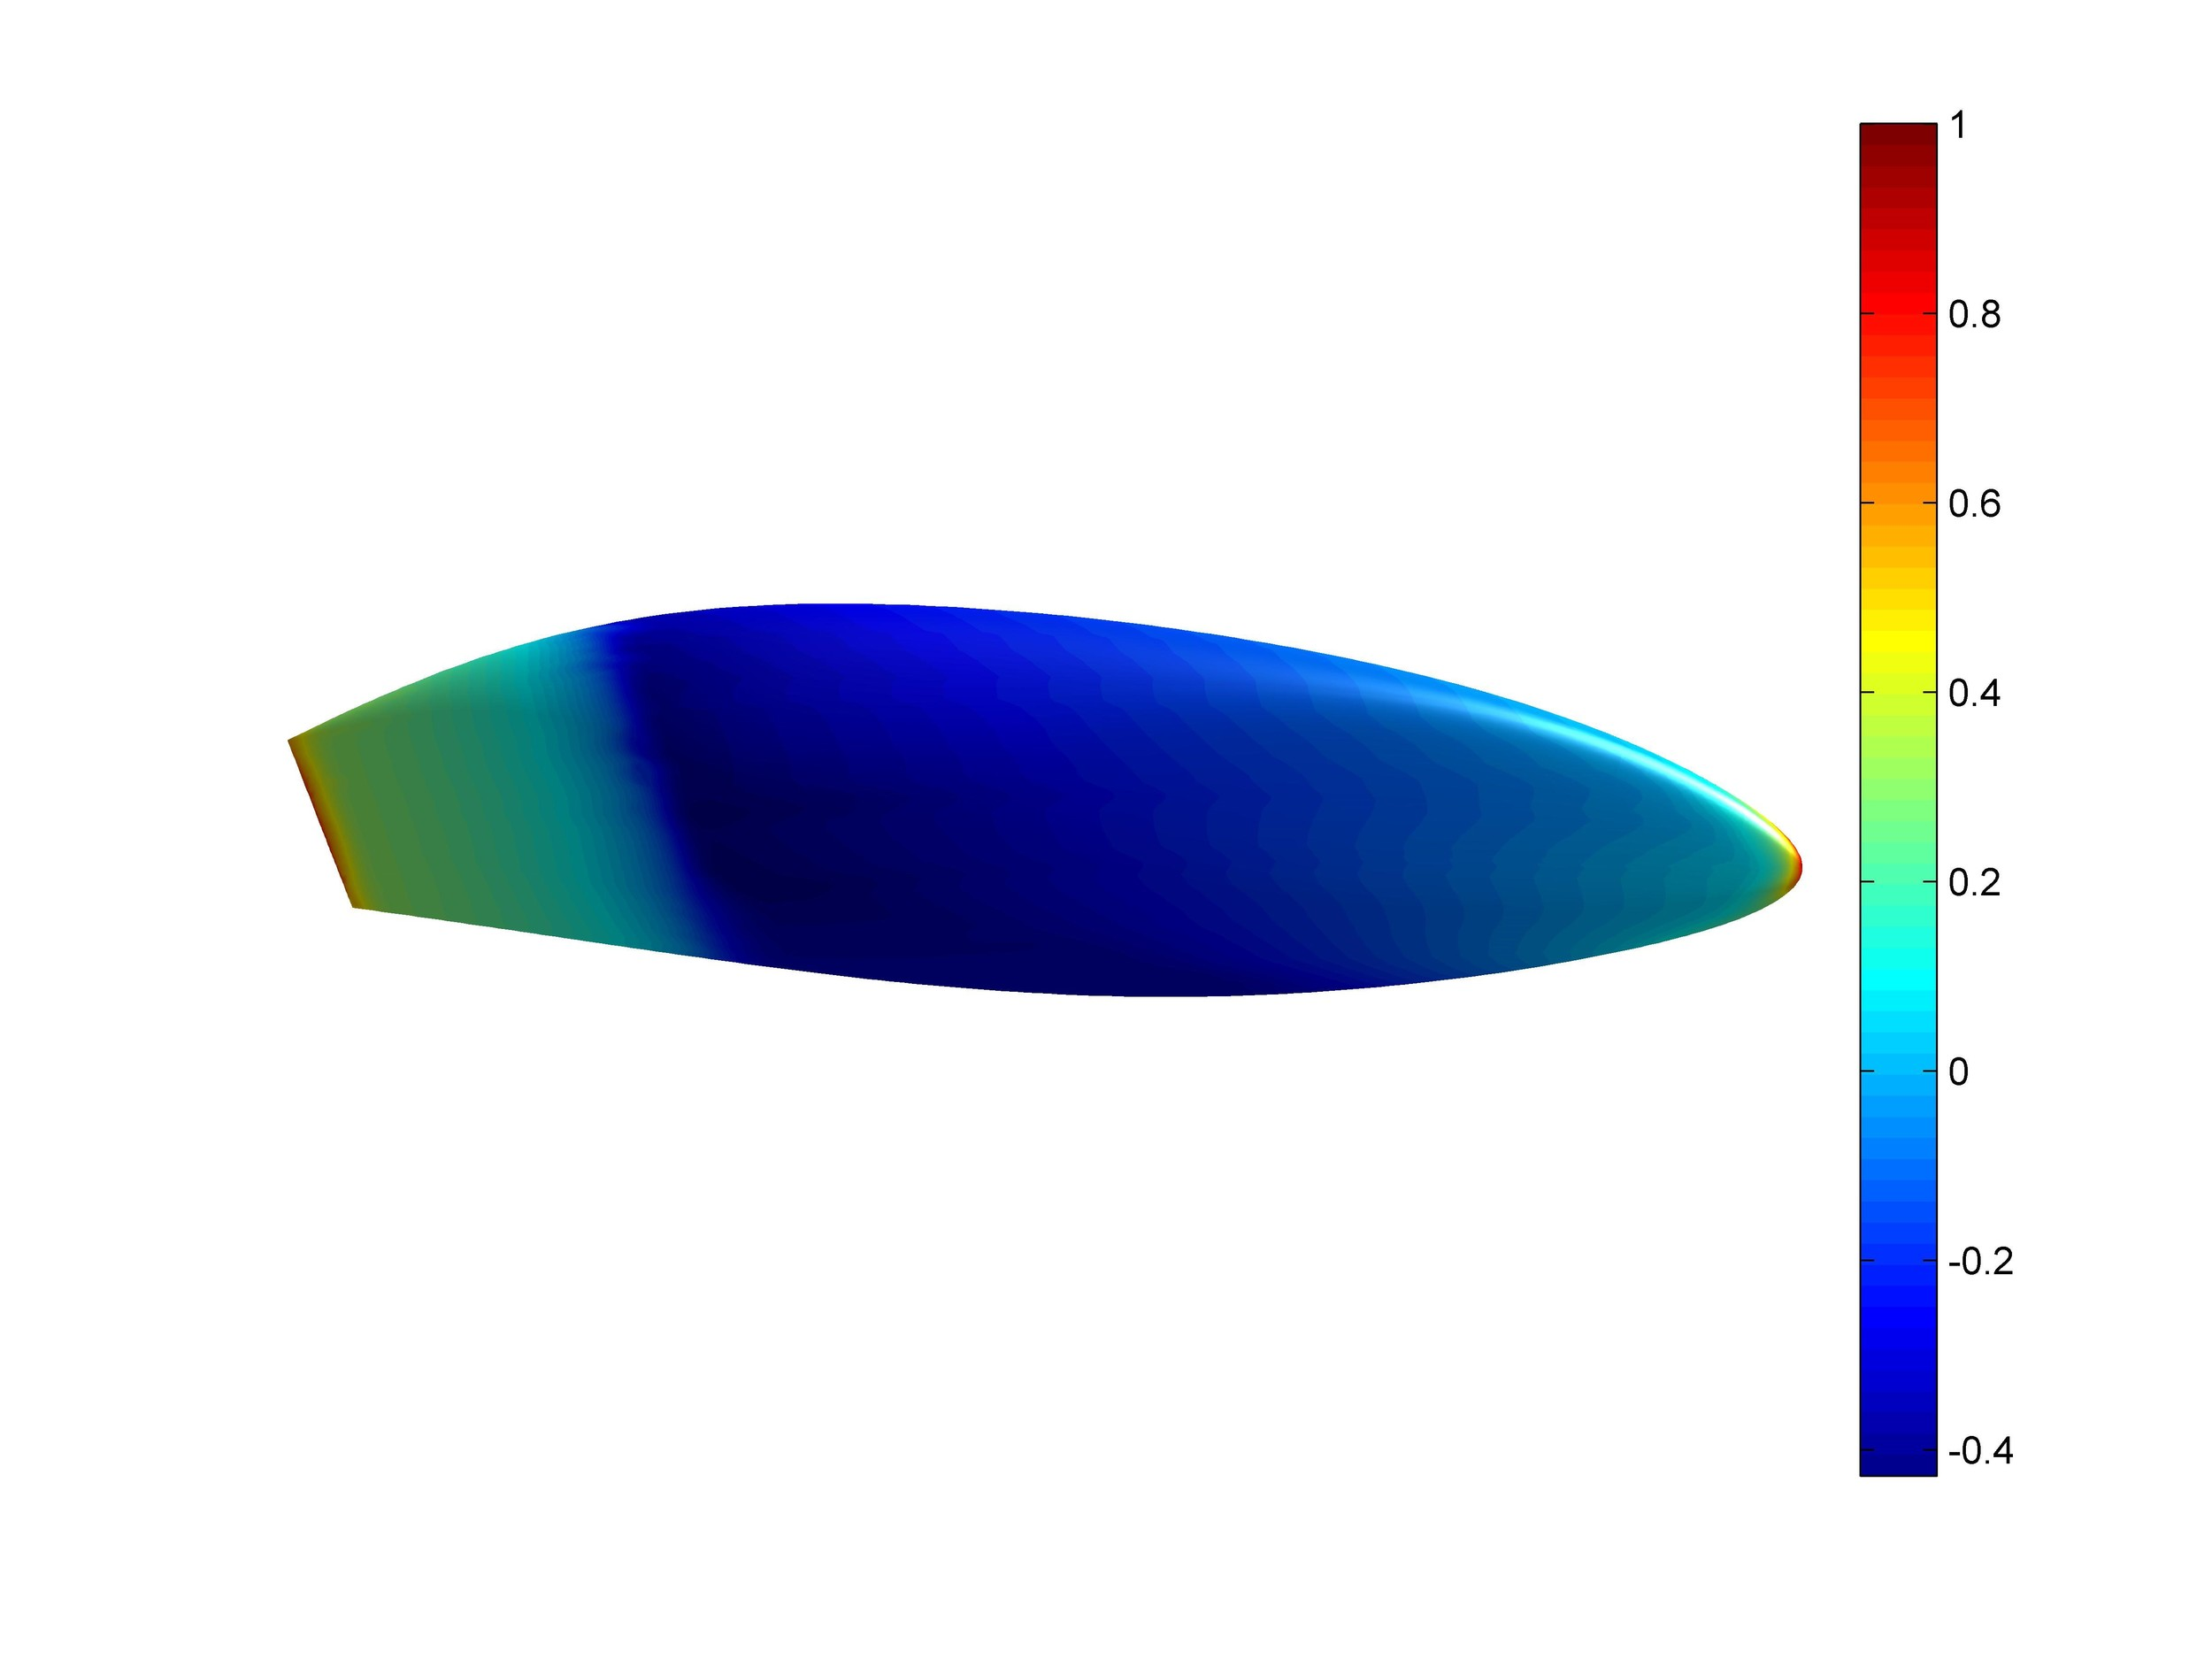 Ideal pressure distribution over Eta seen projected on the original geometry of iteration 1. The optimizer modifies the shape of the vehicle to try and match this pressure distribution.